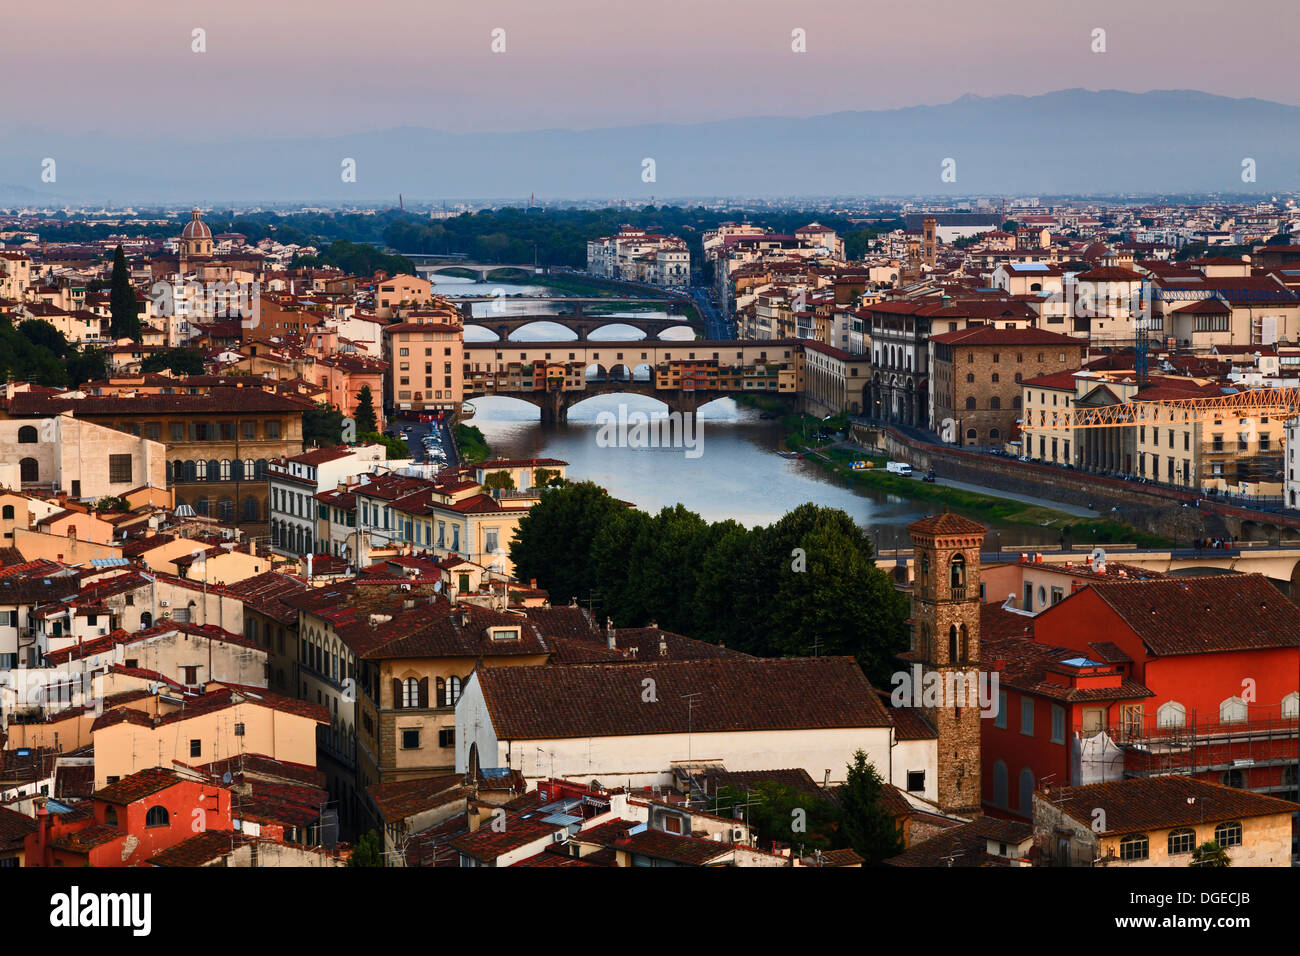 italy tuscany florence city panoramic view over downtown arno river and bridges ponte Vecchio red roofs of old town at sunrise p - Stock Image